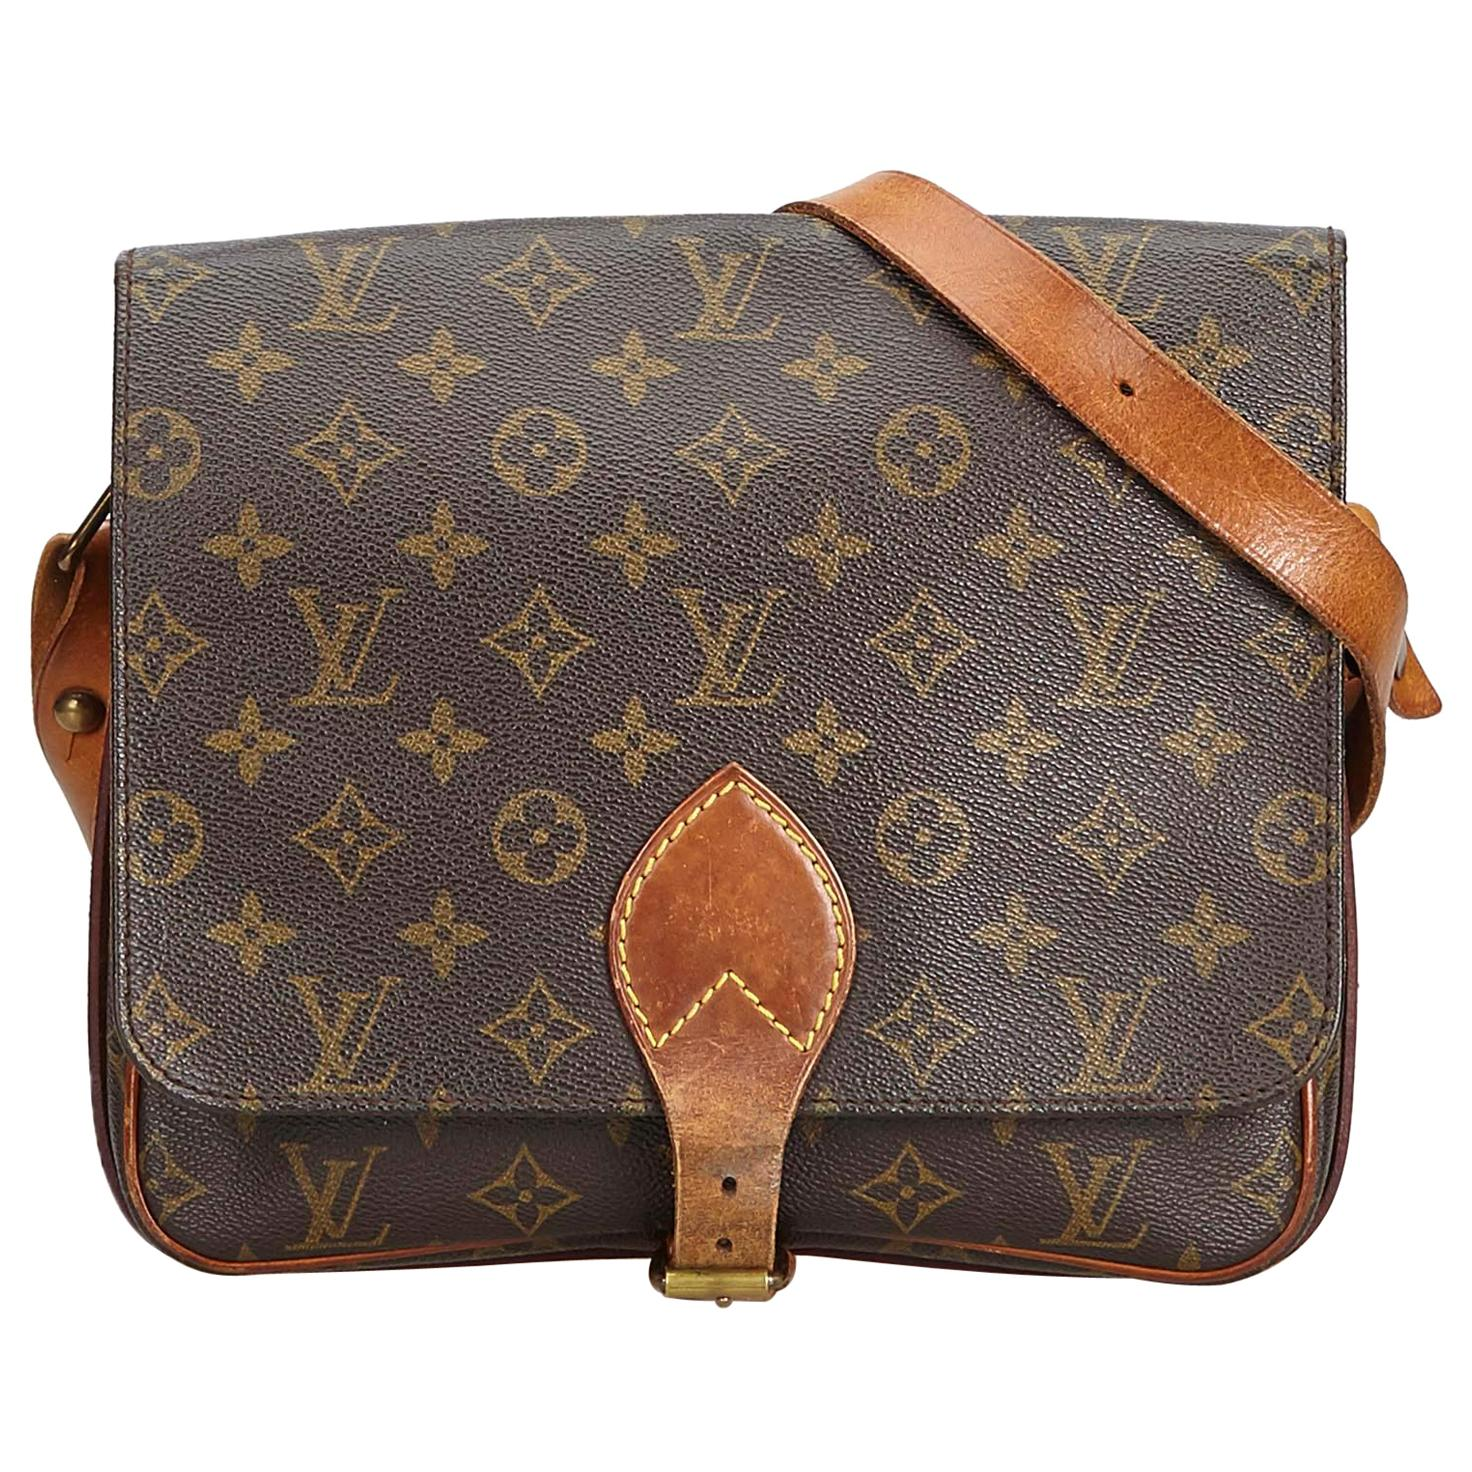 73e2a2d1188 Vintage Louis Vuitton Handbags and Purses - 3,342 For Sale at 1stdibs -  Page 18